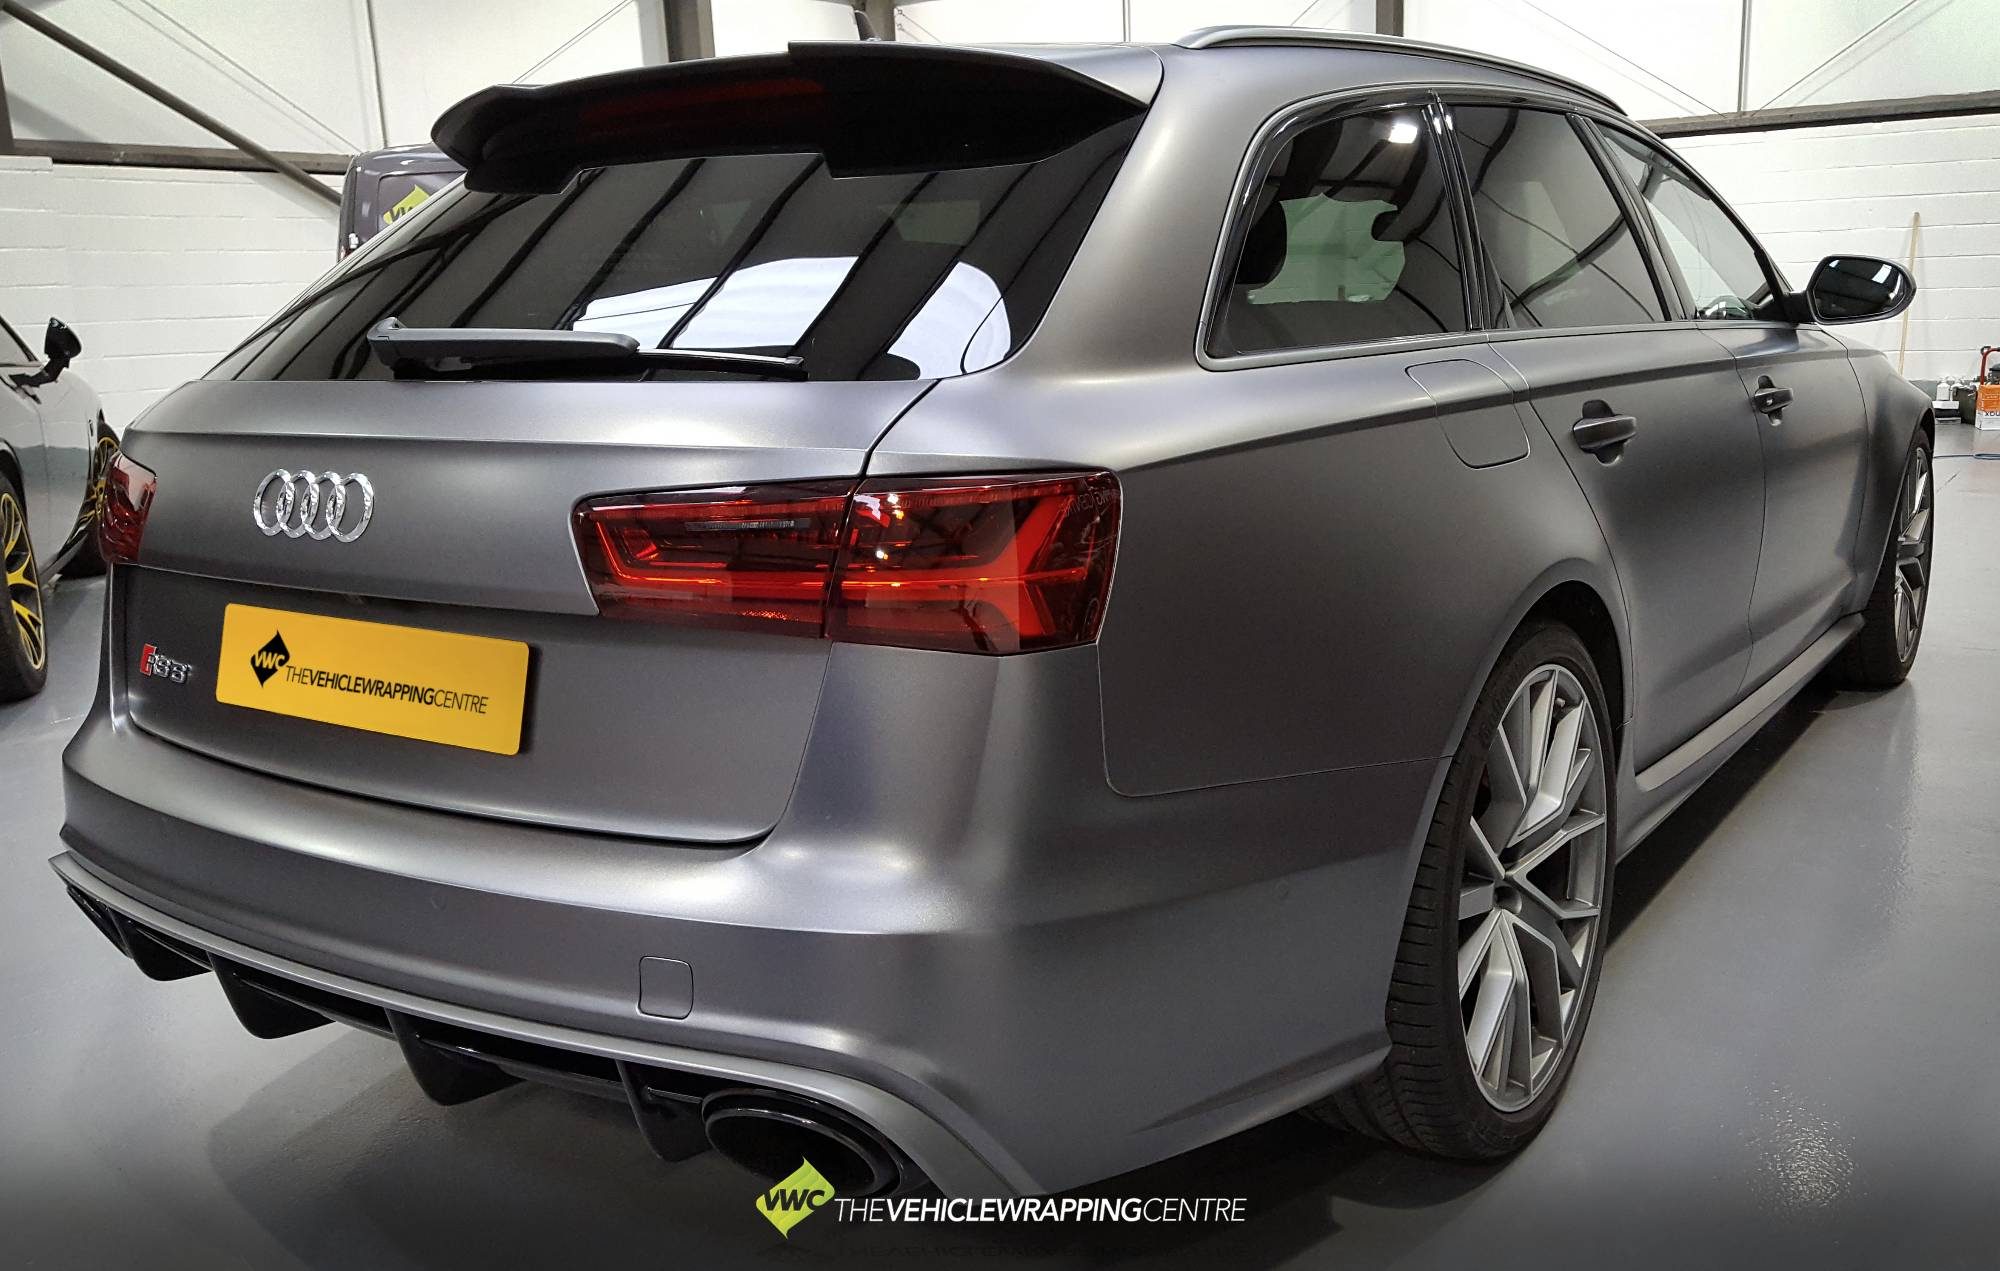 Audi Rs6 Satin Dark Grey Personal Vehicle Wrap Project